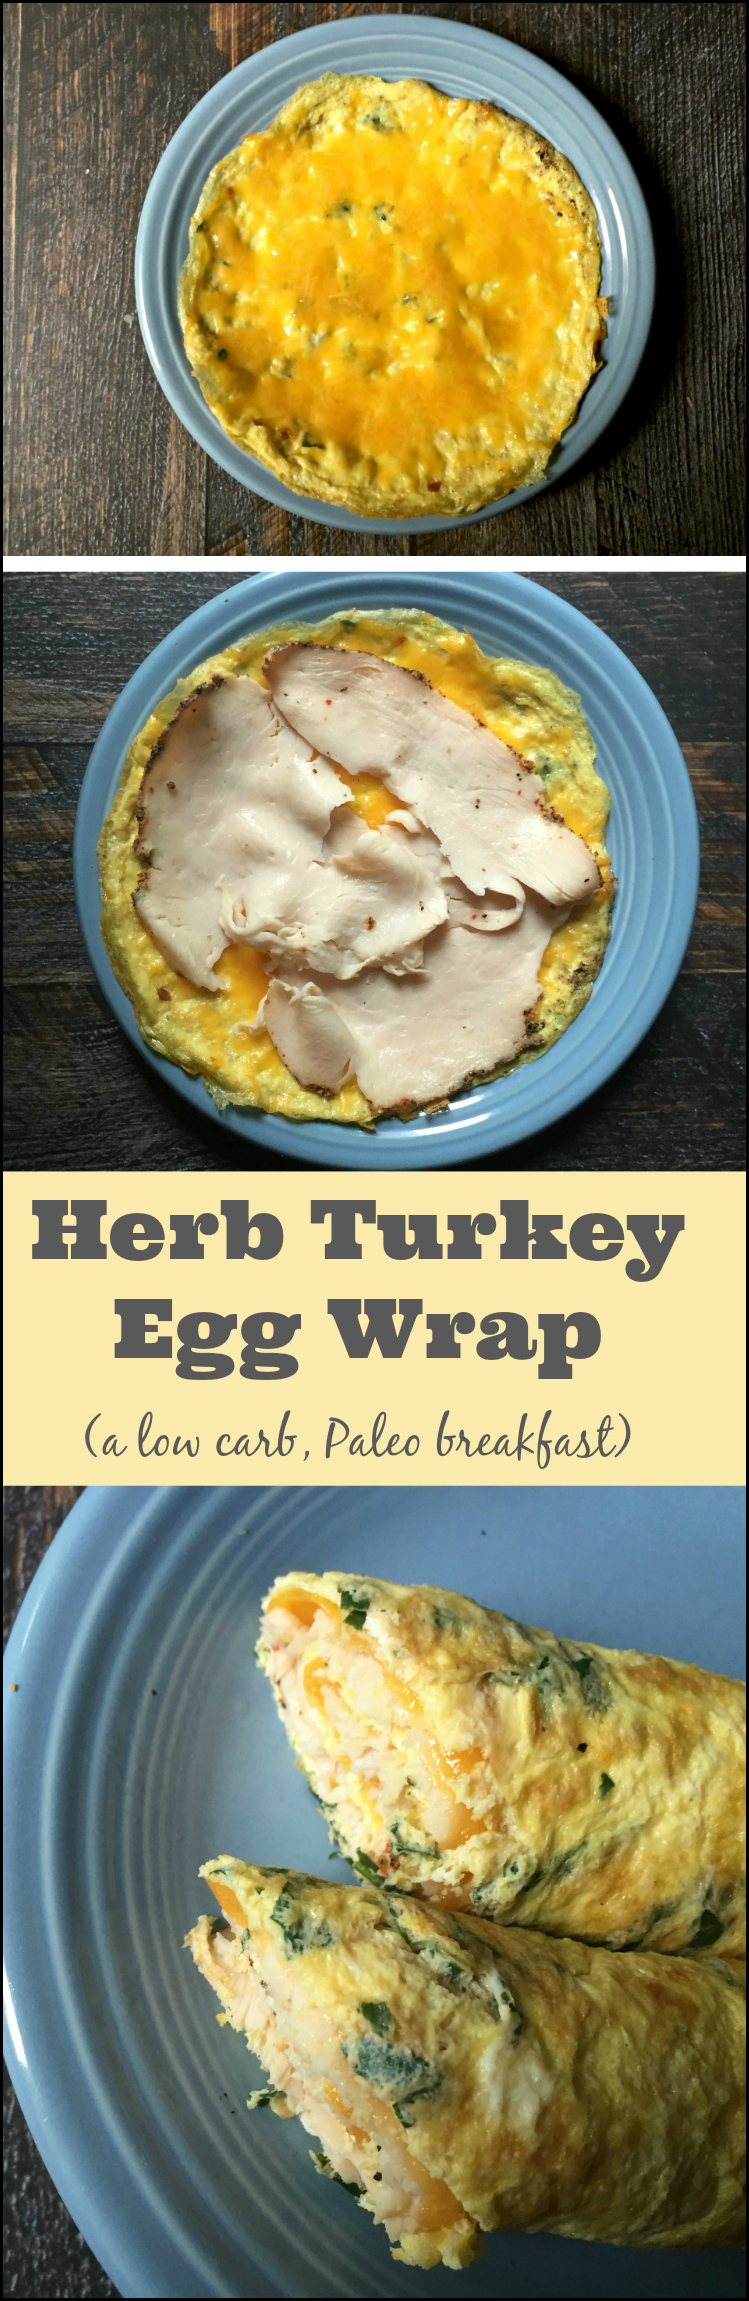 Herb-Turkey-Egg-Wrap-P